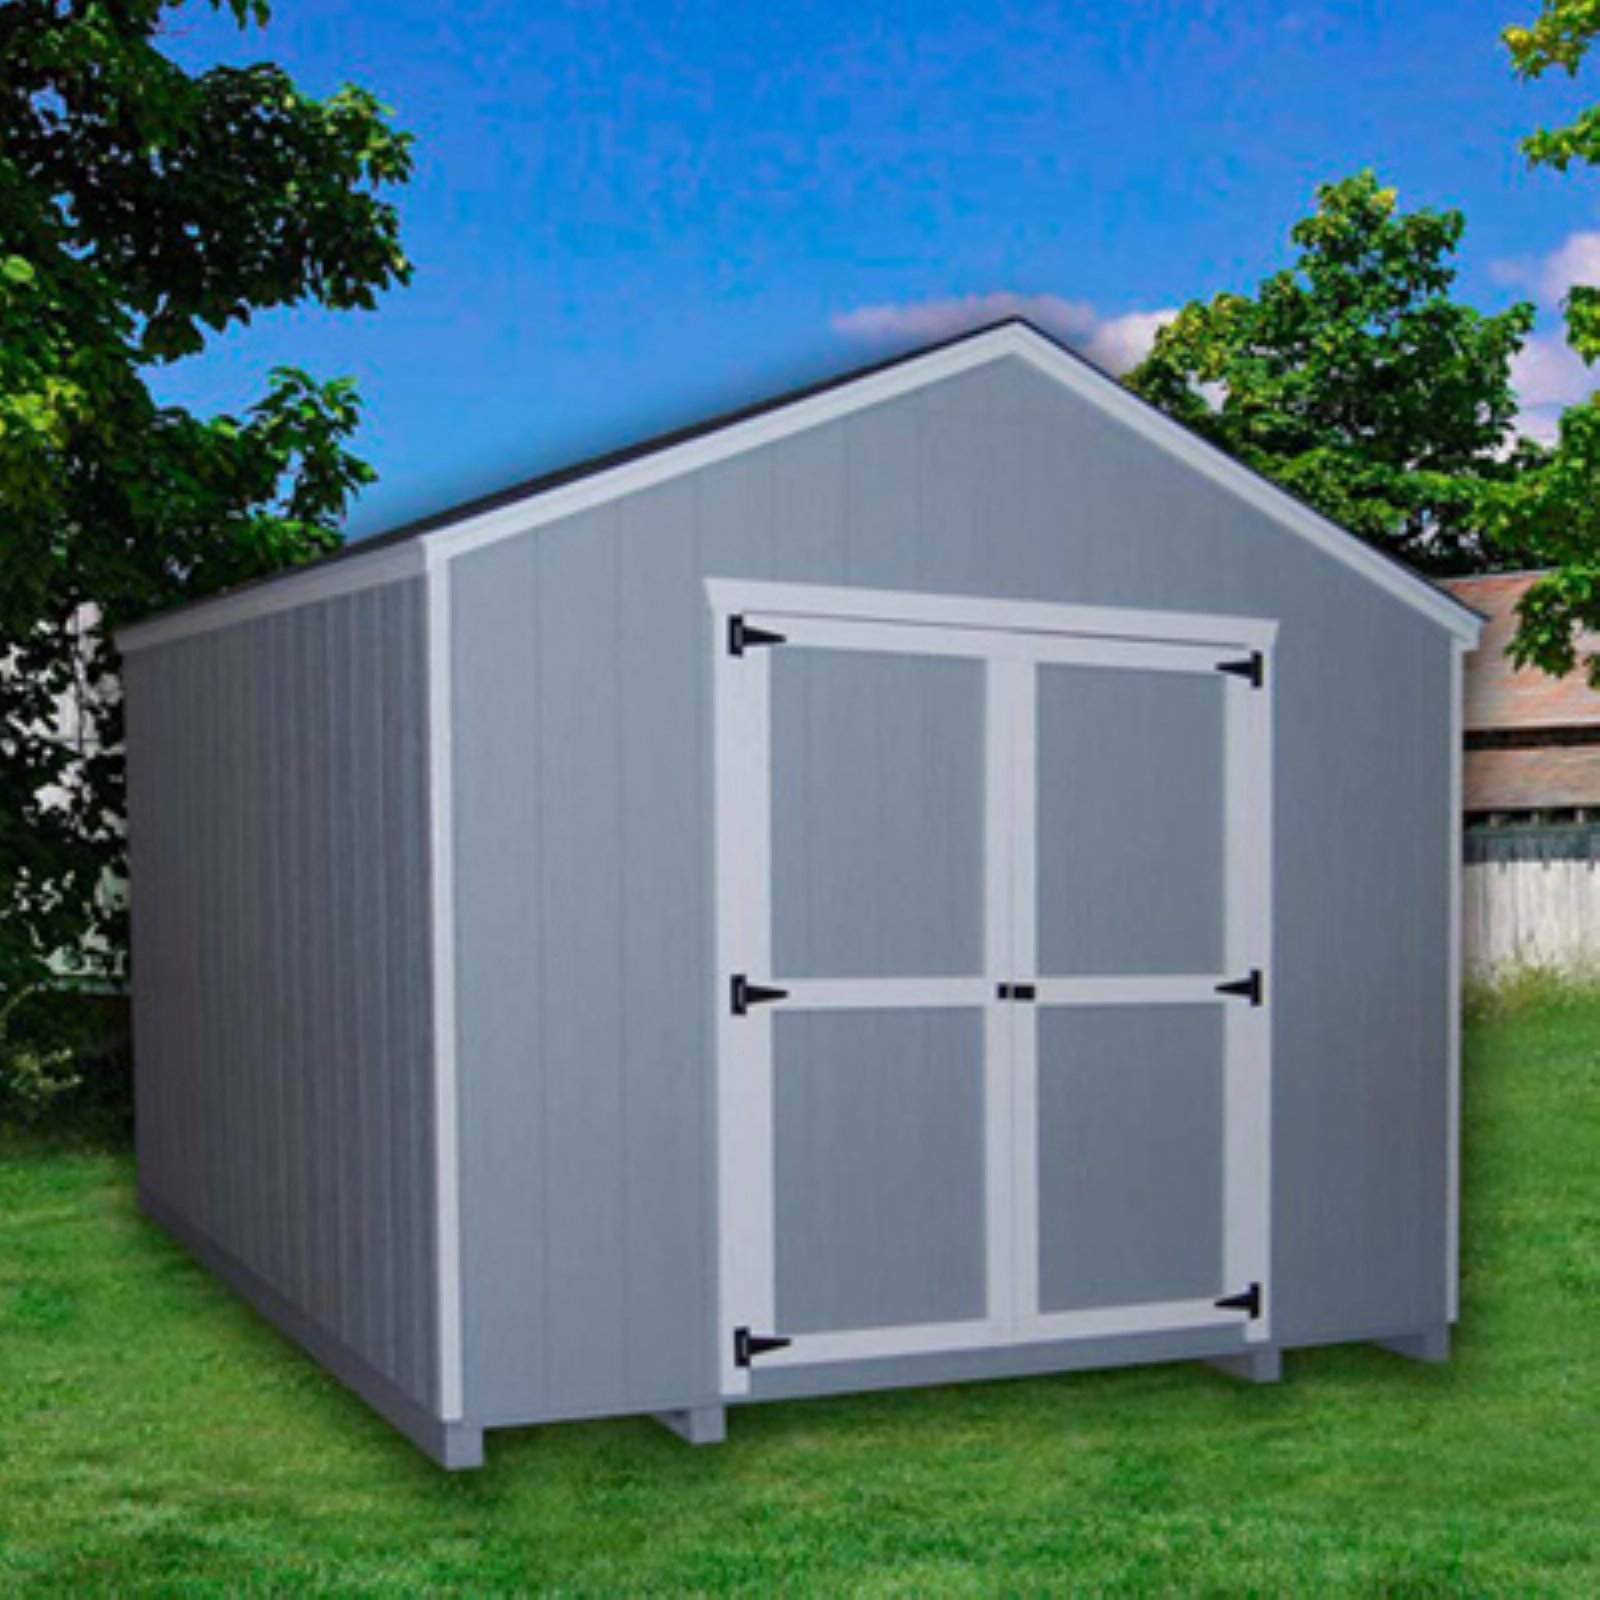 Little Cottage 12 x 16 ft. Value Gable Precut Storage Shed